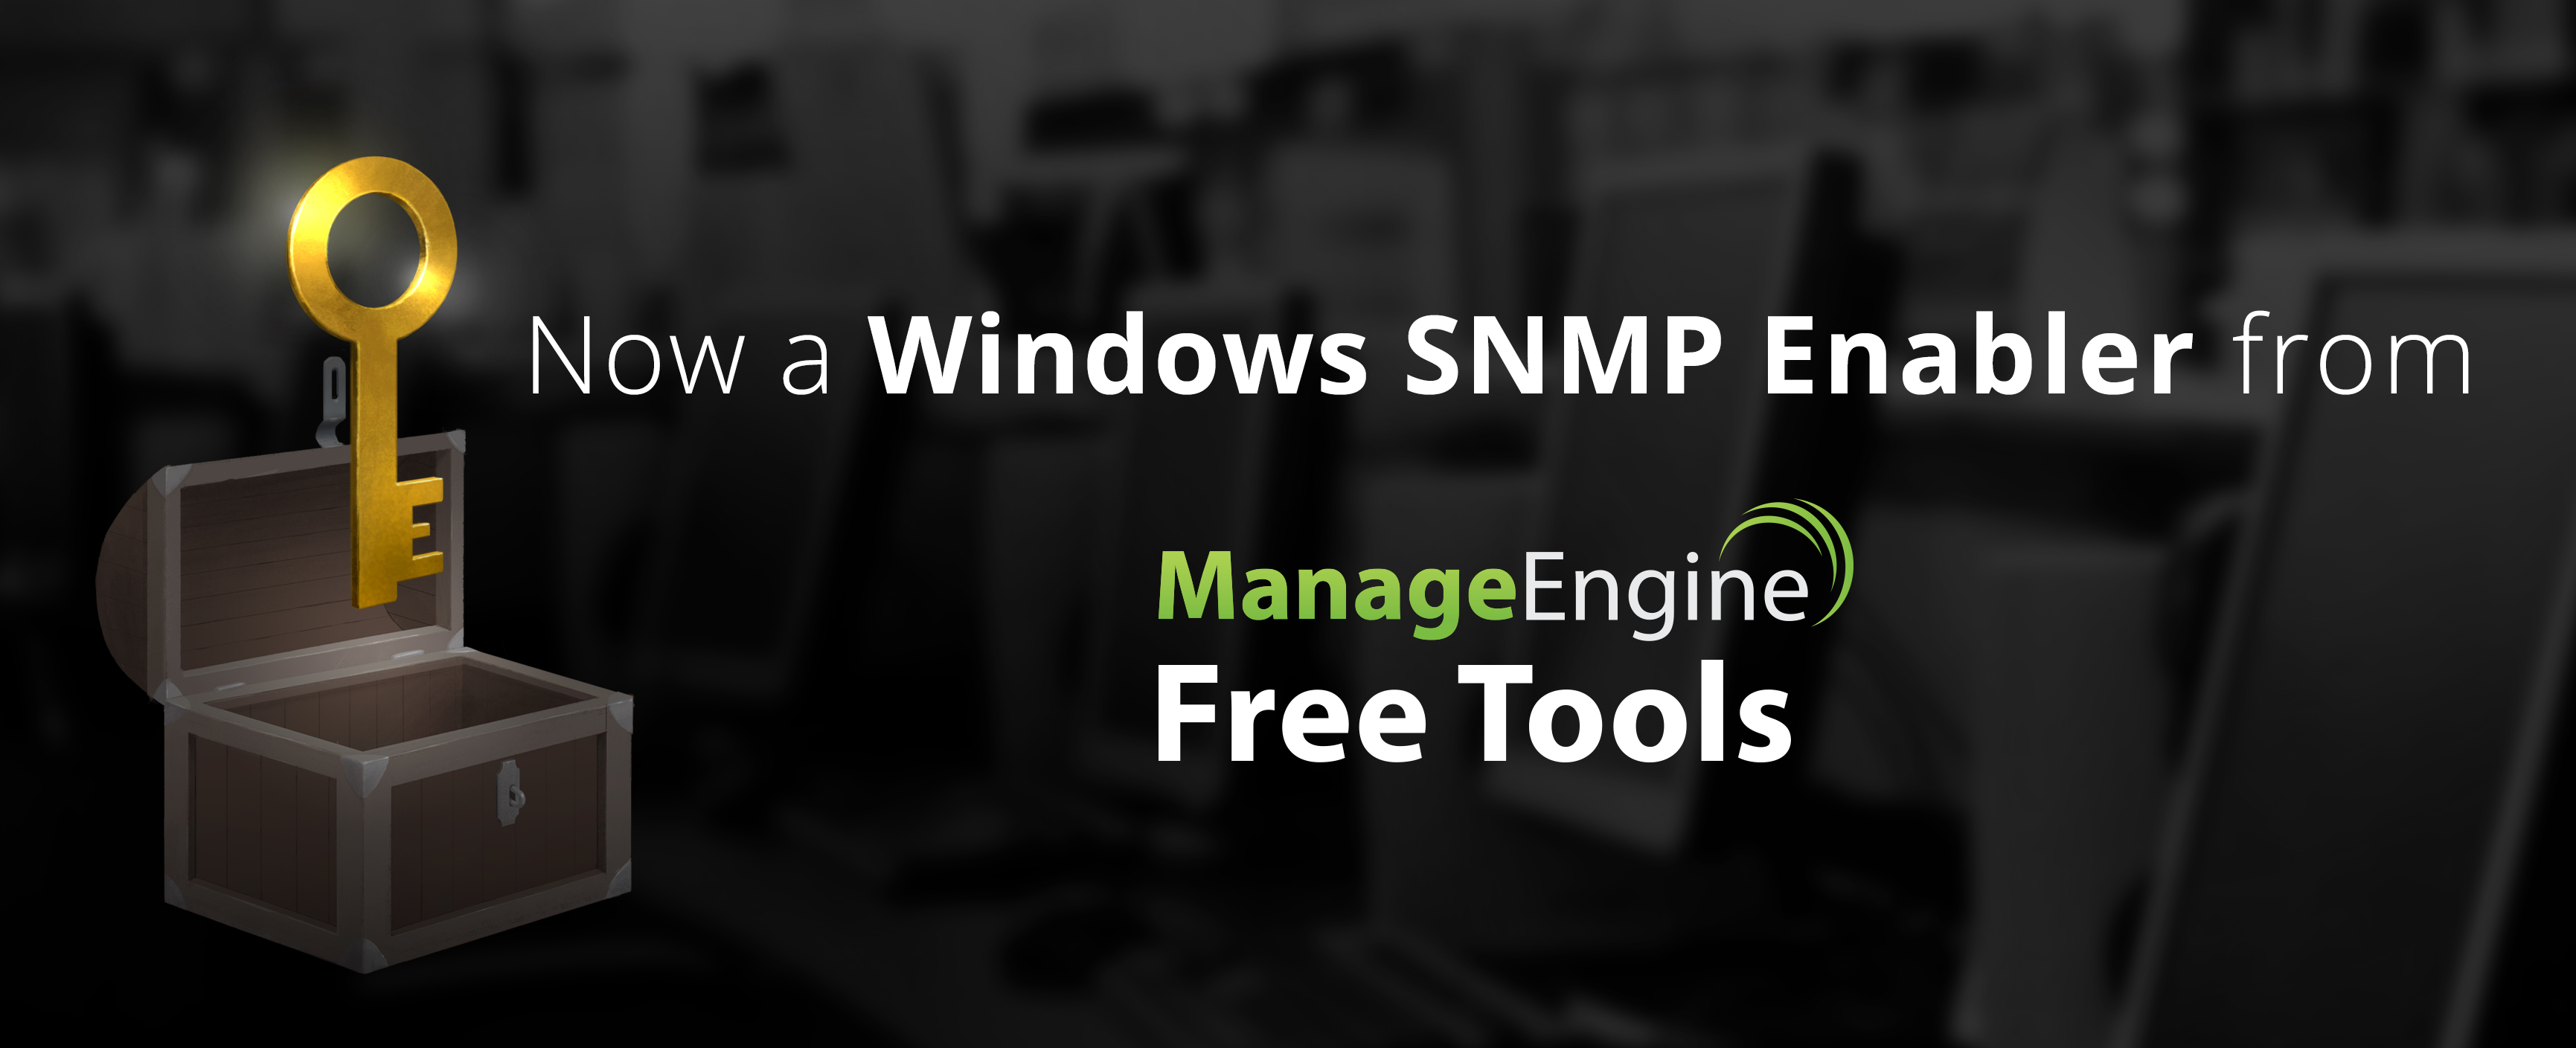 Enable SNMP Service on Your Remote Windows Machines for Free!